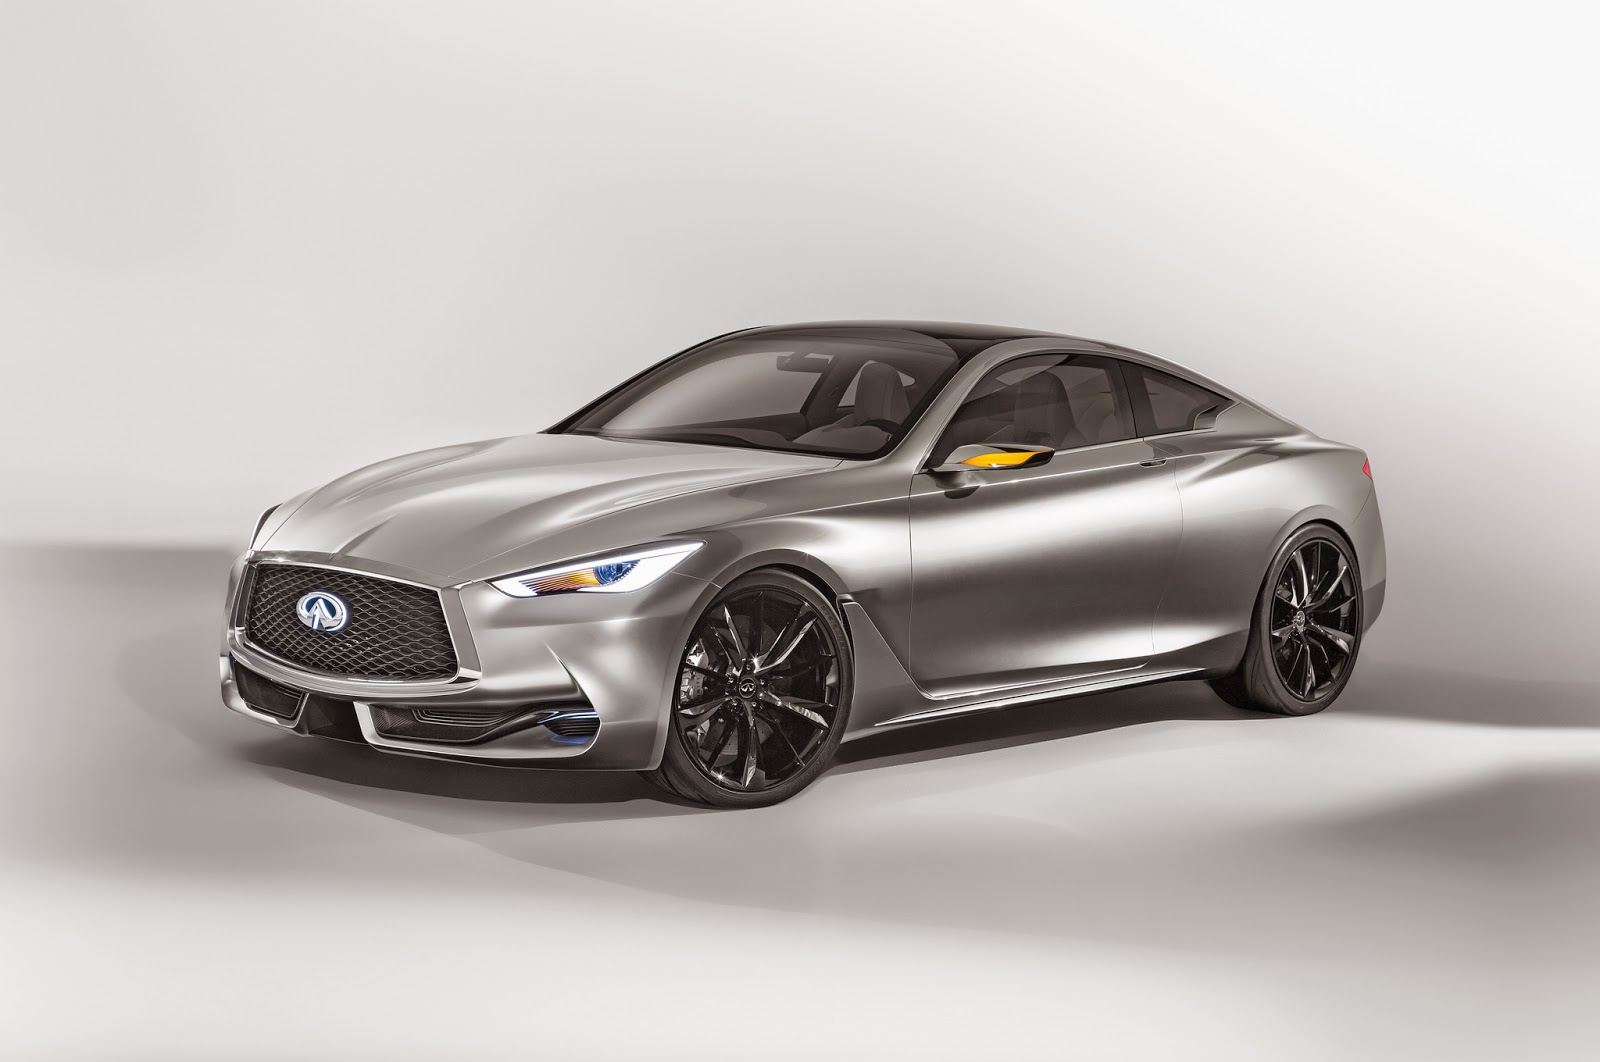 release infiniti and coupe date infinity price automotive dealer